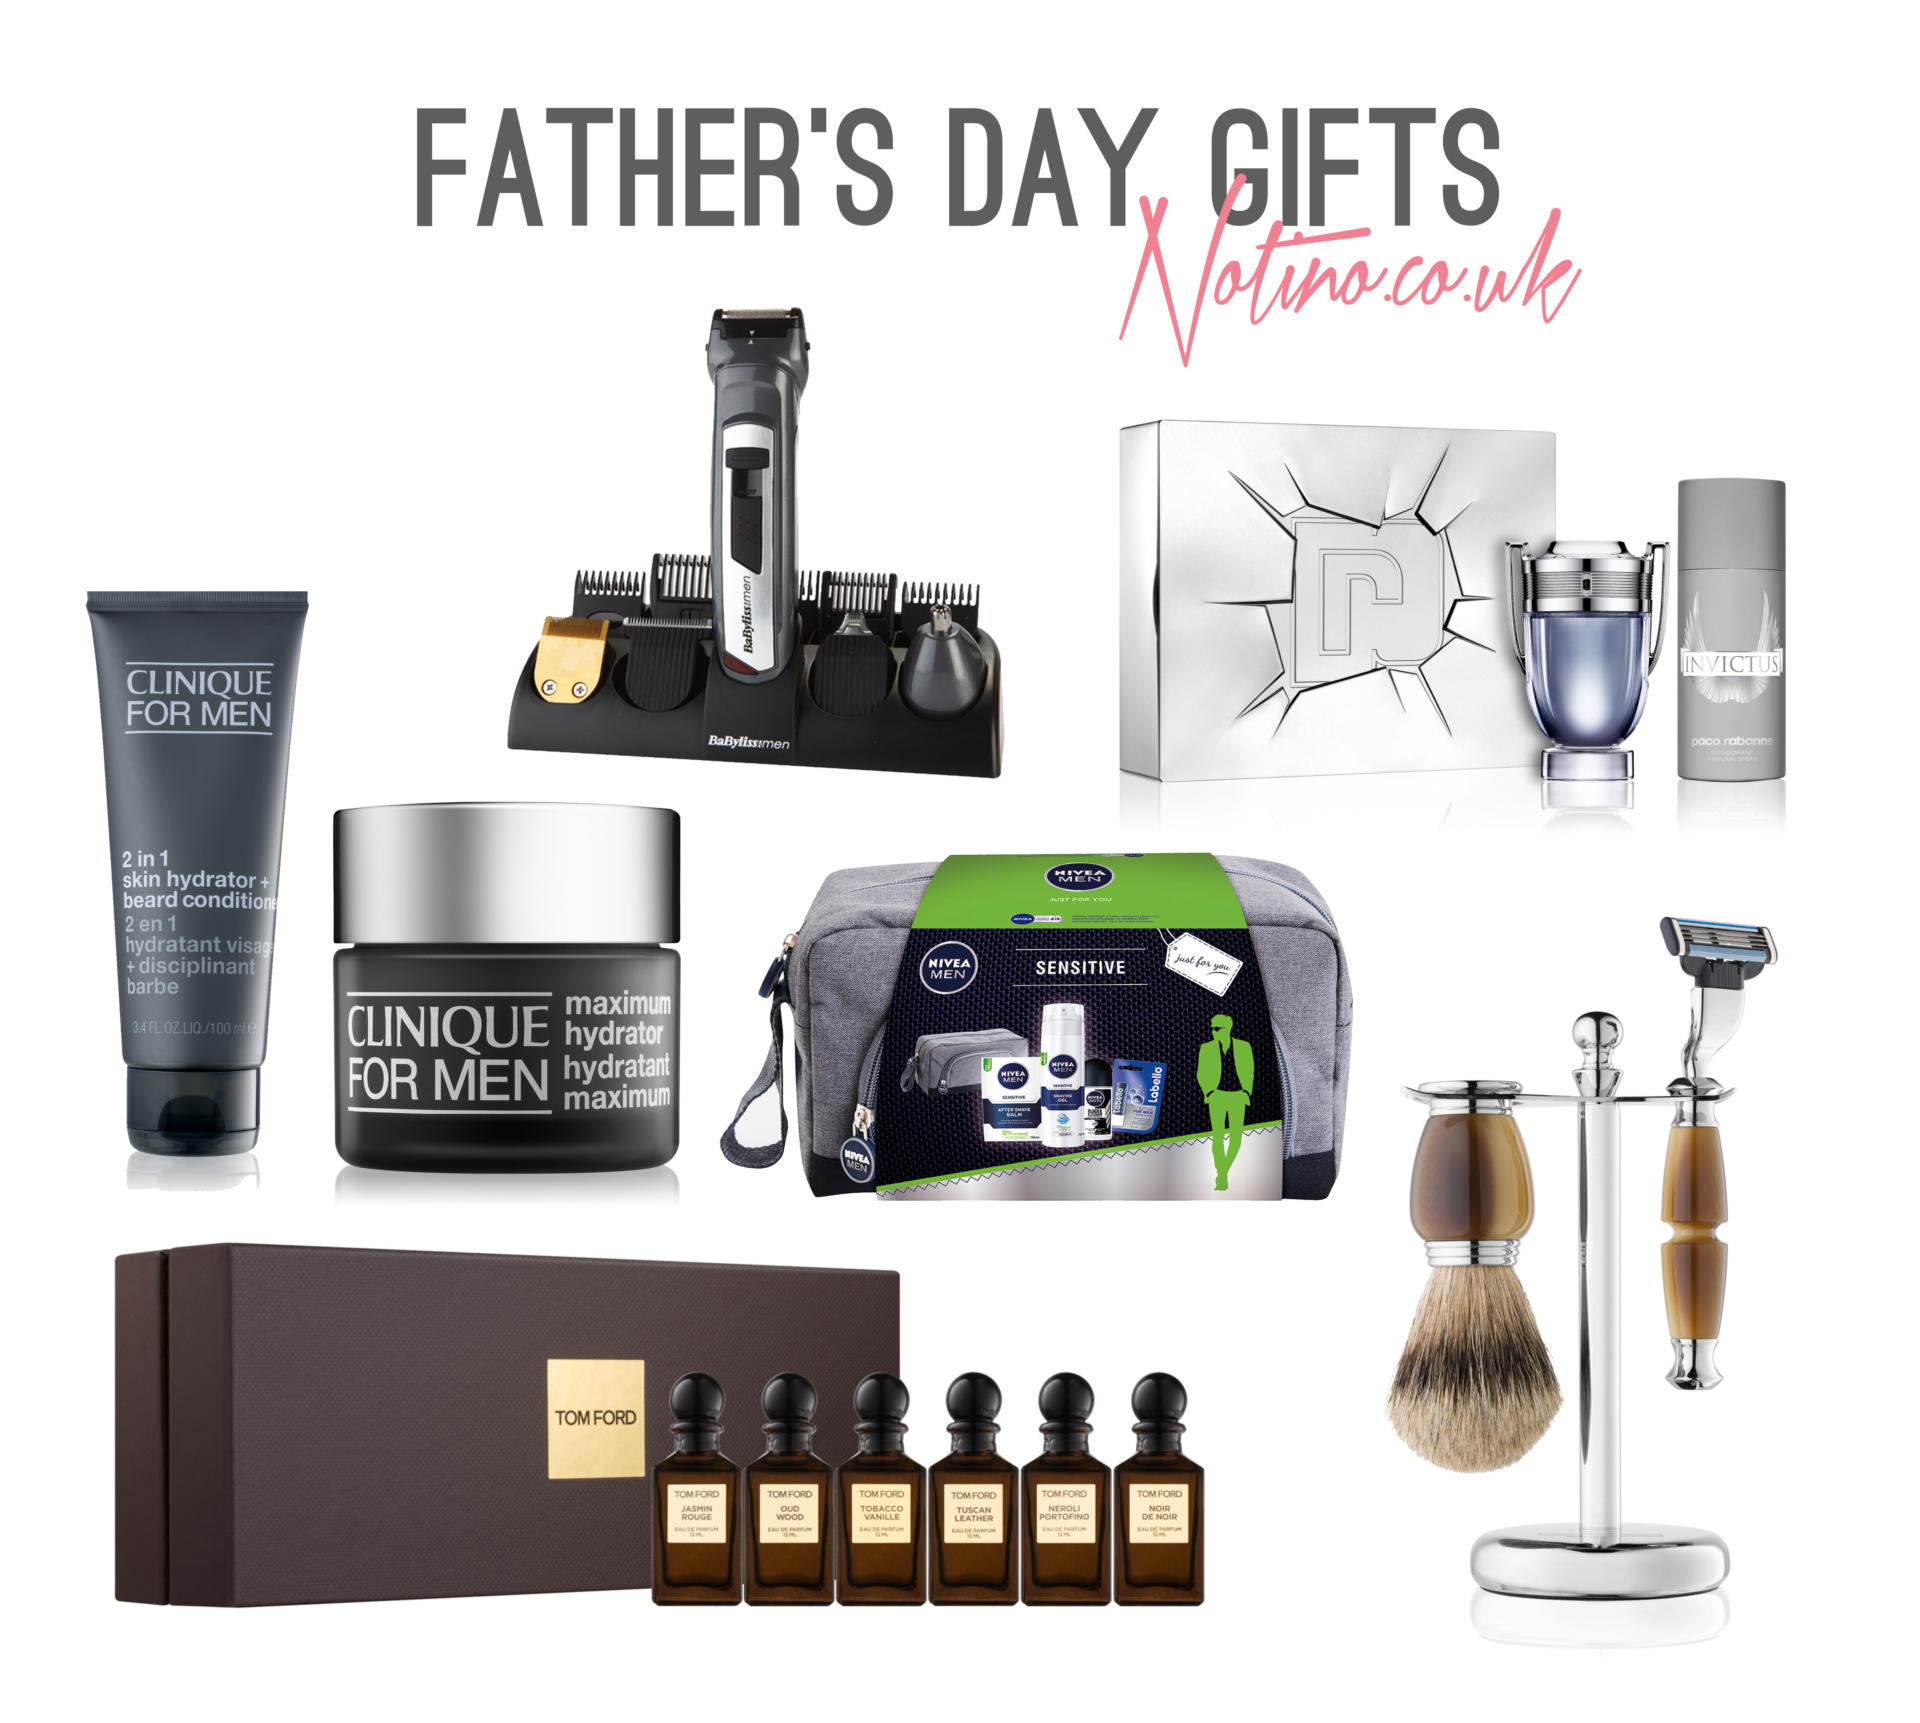 Father's Day Gift Guide with Notino.co.uk - Rachel Nicole UK Blogger